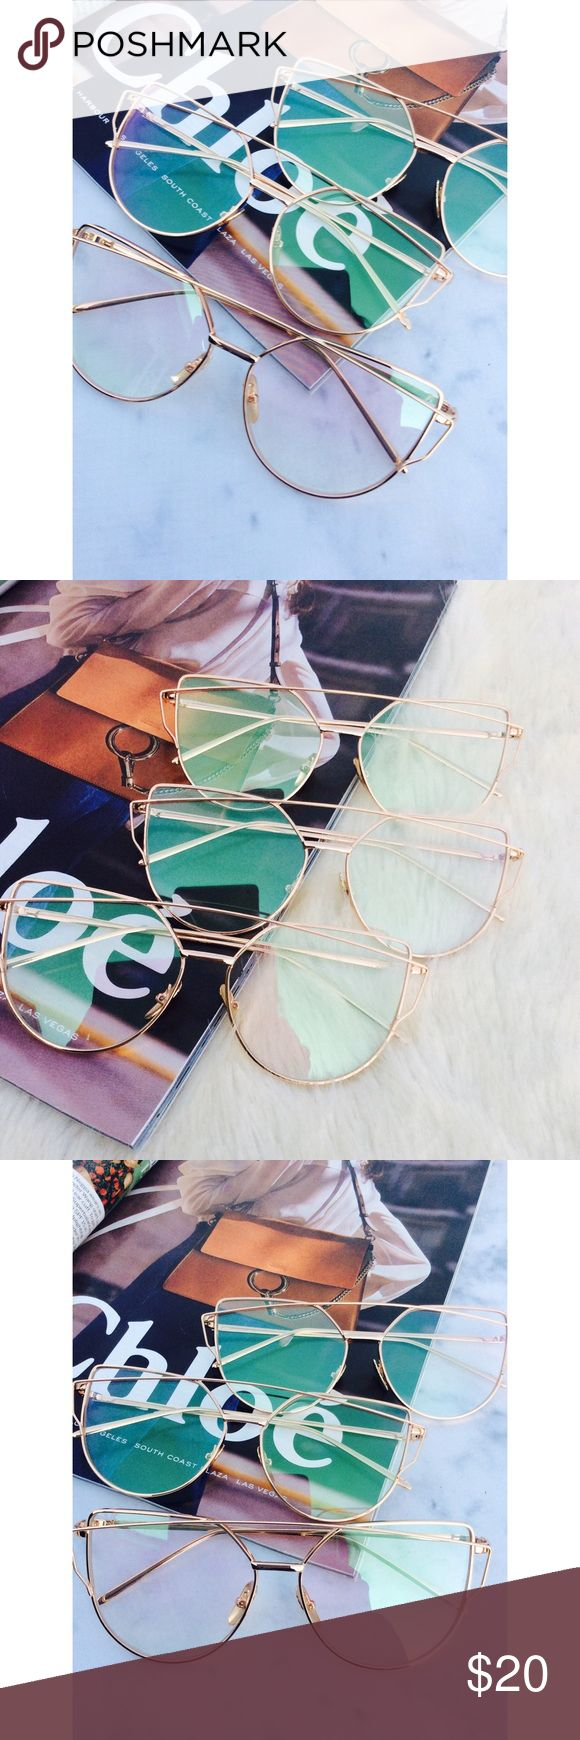 New Arrival-Aviator Sunglasses, Cat Eye Sunglasses Clear Cat Eye Aviator Sunglasses. This listing is for a pair of Cat Eye aviator sunshades. Retro Sunglasses. Wire sunglasses. Trending sunglasses. UV protection. Gold frames. Top quality! Brand new! Bundle and save!                                                                       ✨1 for $20, 2 for $30, 3 for $40✨ тнαик уσυ💕 Accessories Glasses